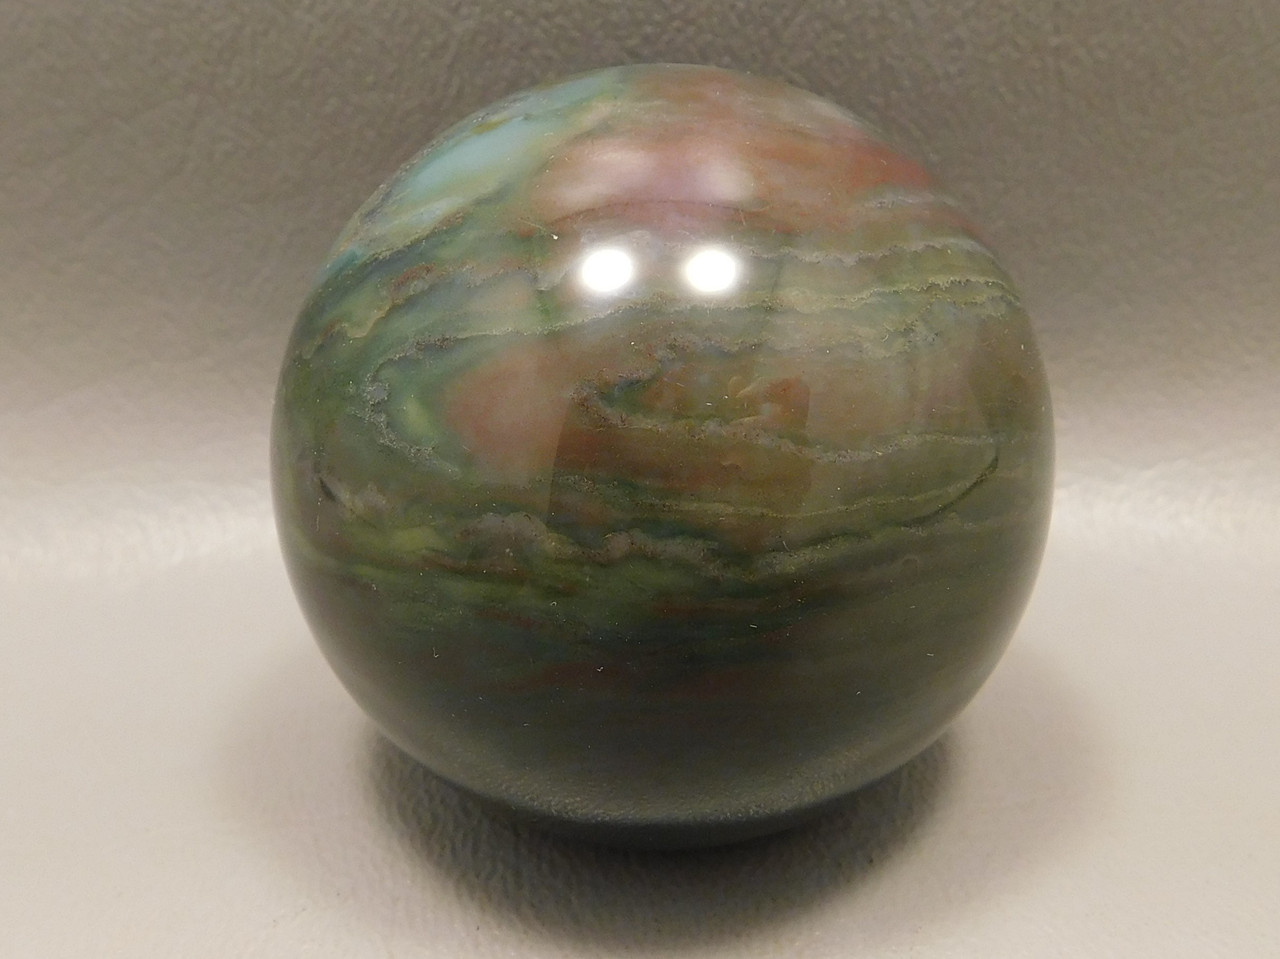 Fancy Jasper Sphere Carving 2 inch Stone 50 mm Ball India Rock #OF1